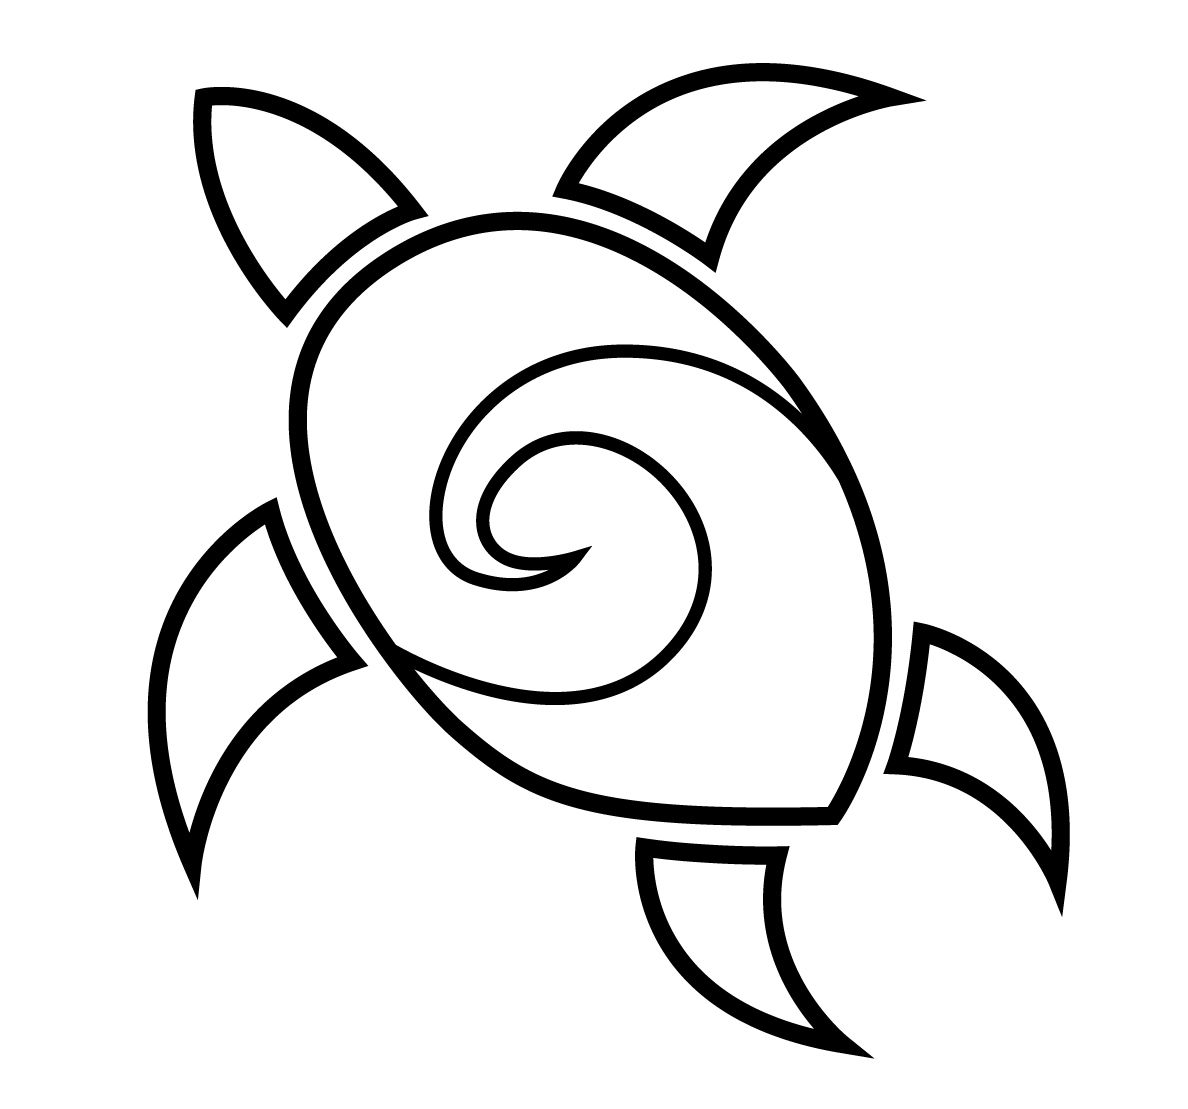 Animated Turtle Clip Art Simple Turtle Drawing Ideas For The